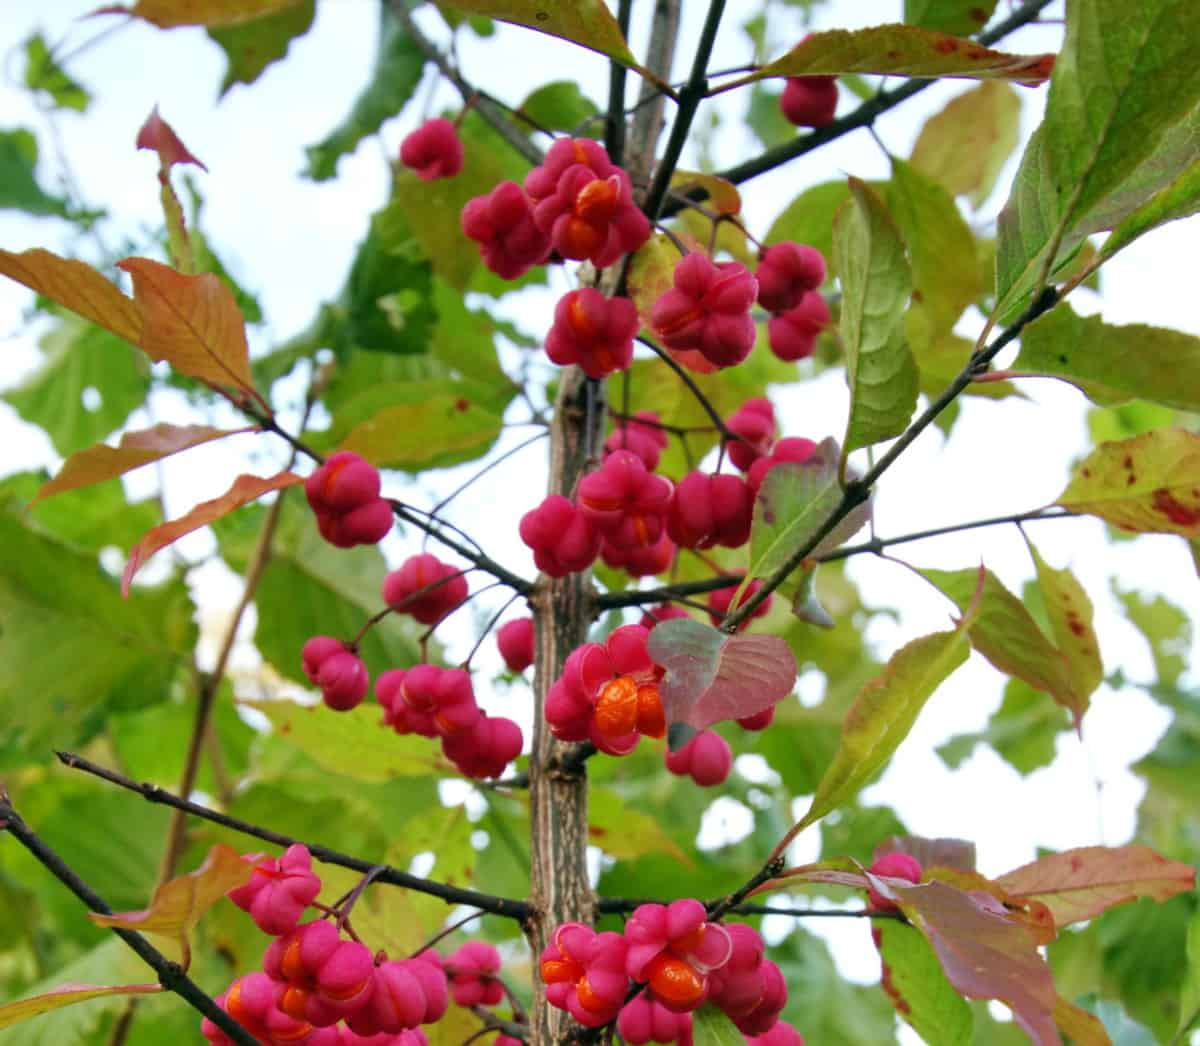 Birds enjoy snacking on the ornamental berries of the spindle tree.